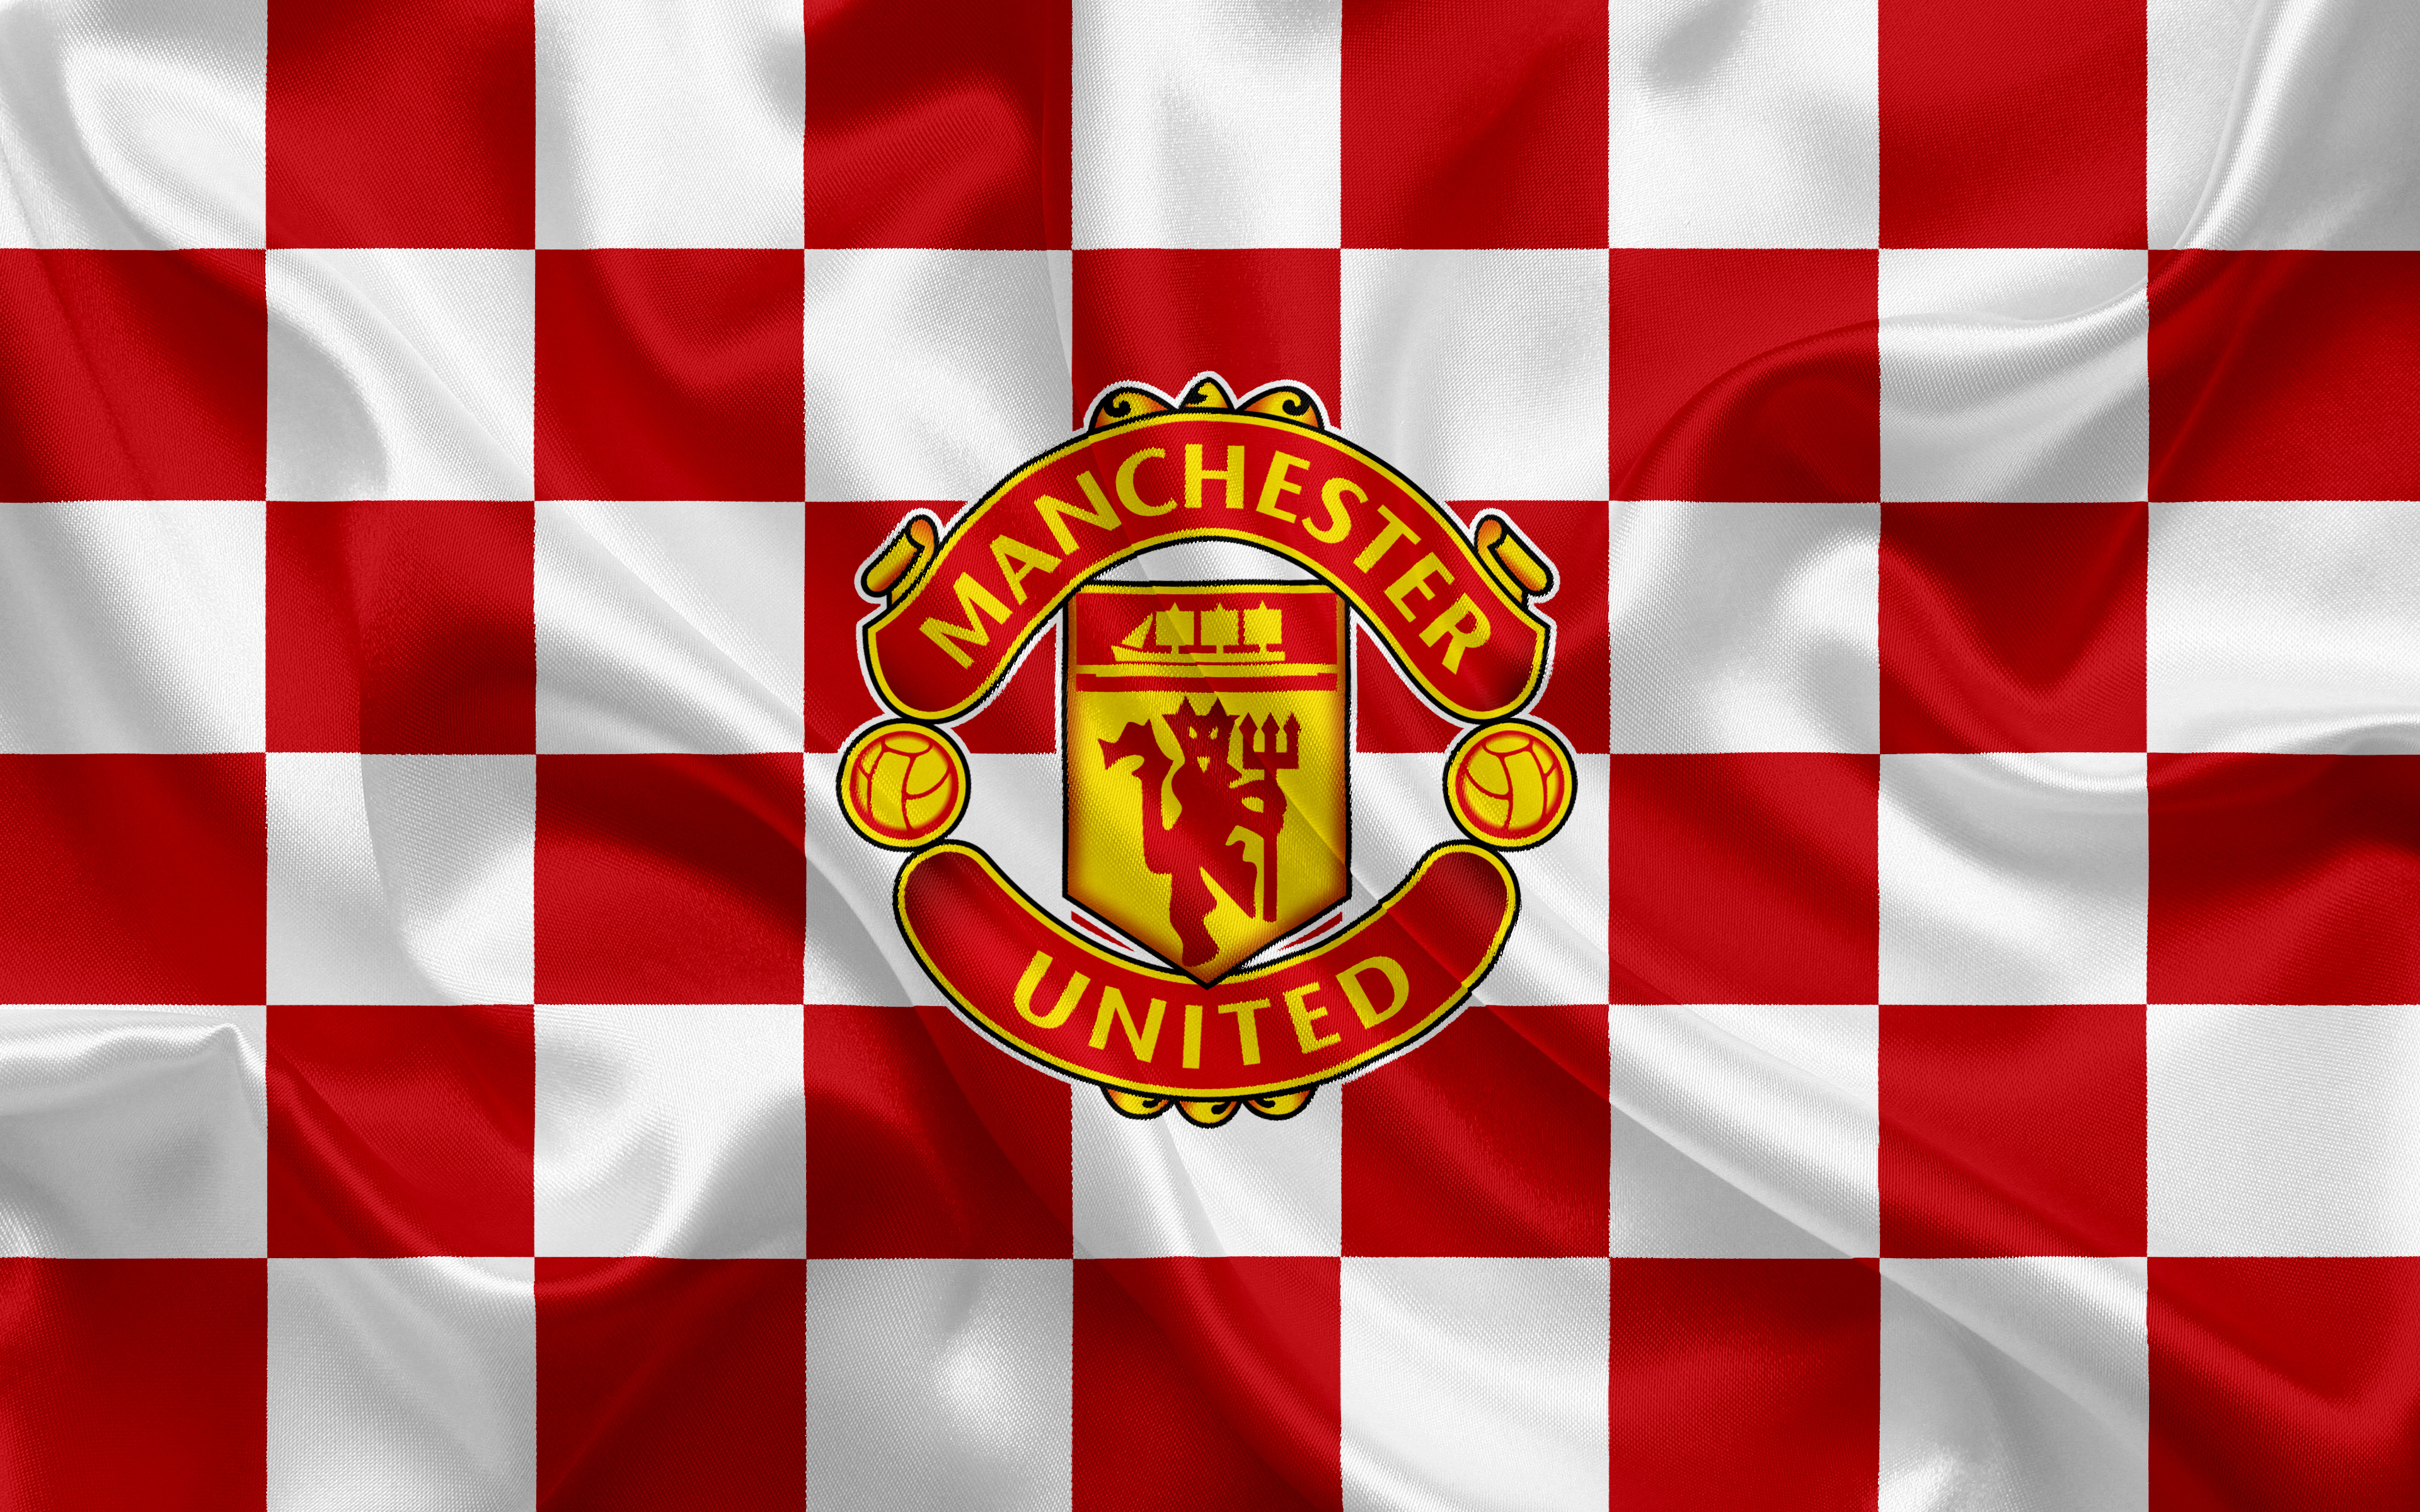 Manchester United Logo 4k Ultra Hd Wallpaper Background Image 3840x2400 Id 969523 Wallpaper Abyss